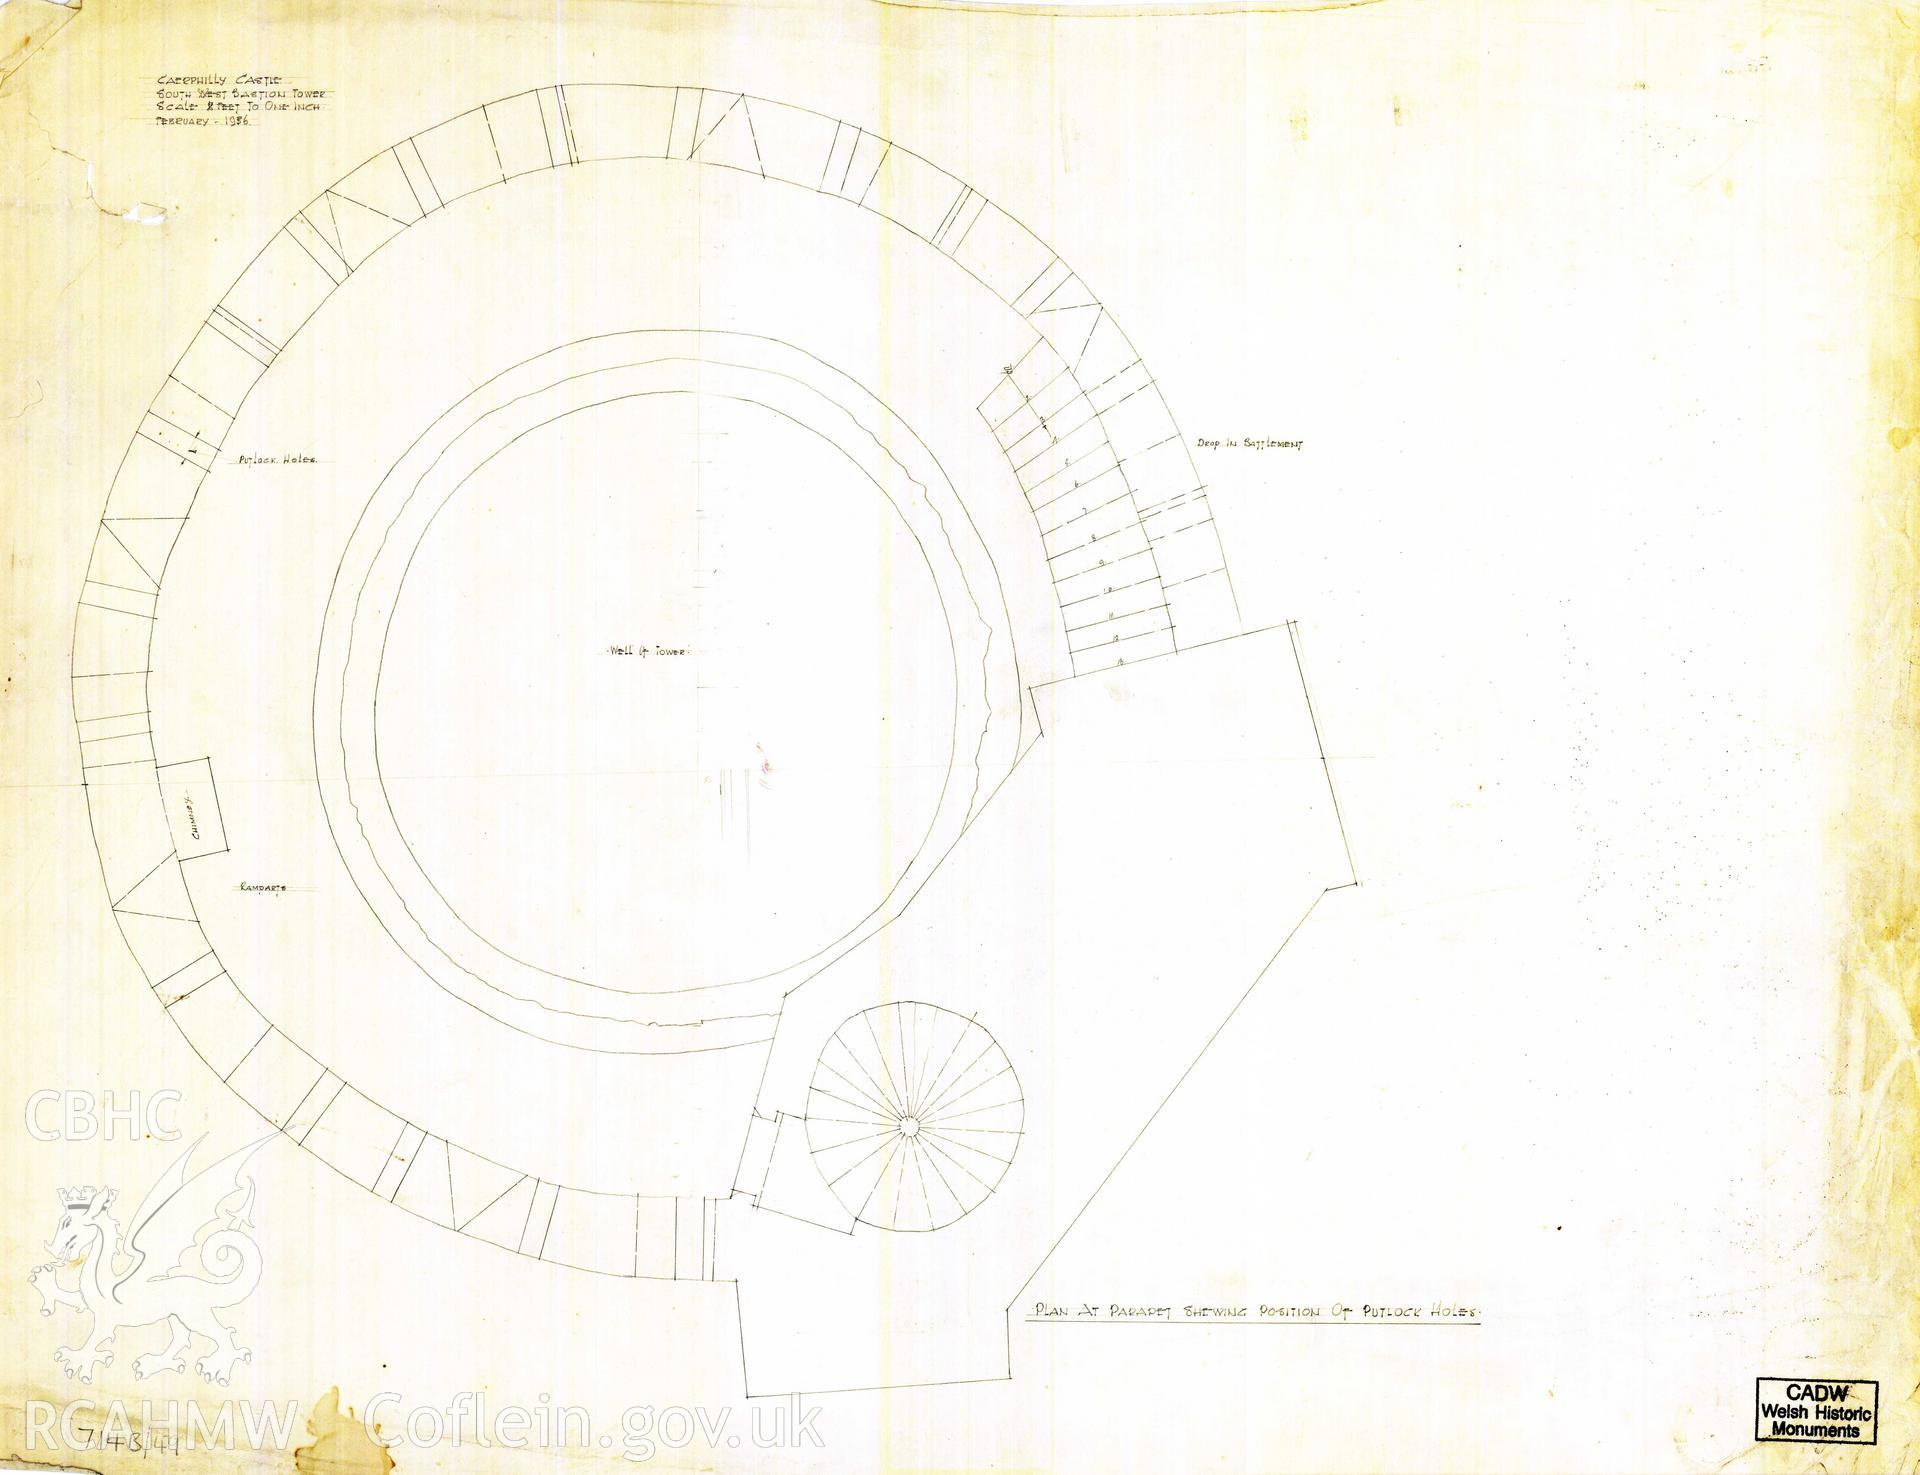 Cadw guardianship monument drawing of Caerphilly Castle. SW tower,roof-level plan. Cadw ref. no: 714B/49. Scale 1:24.